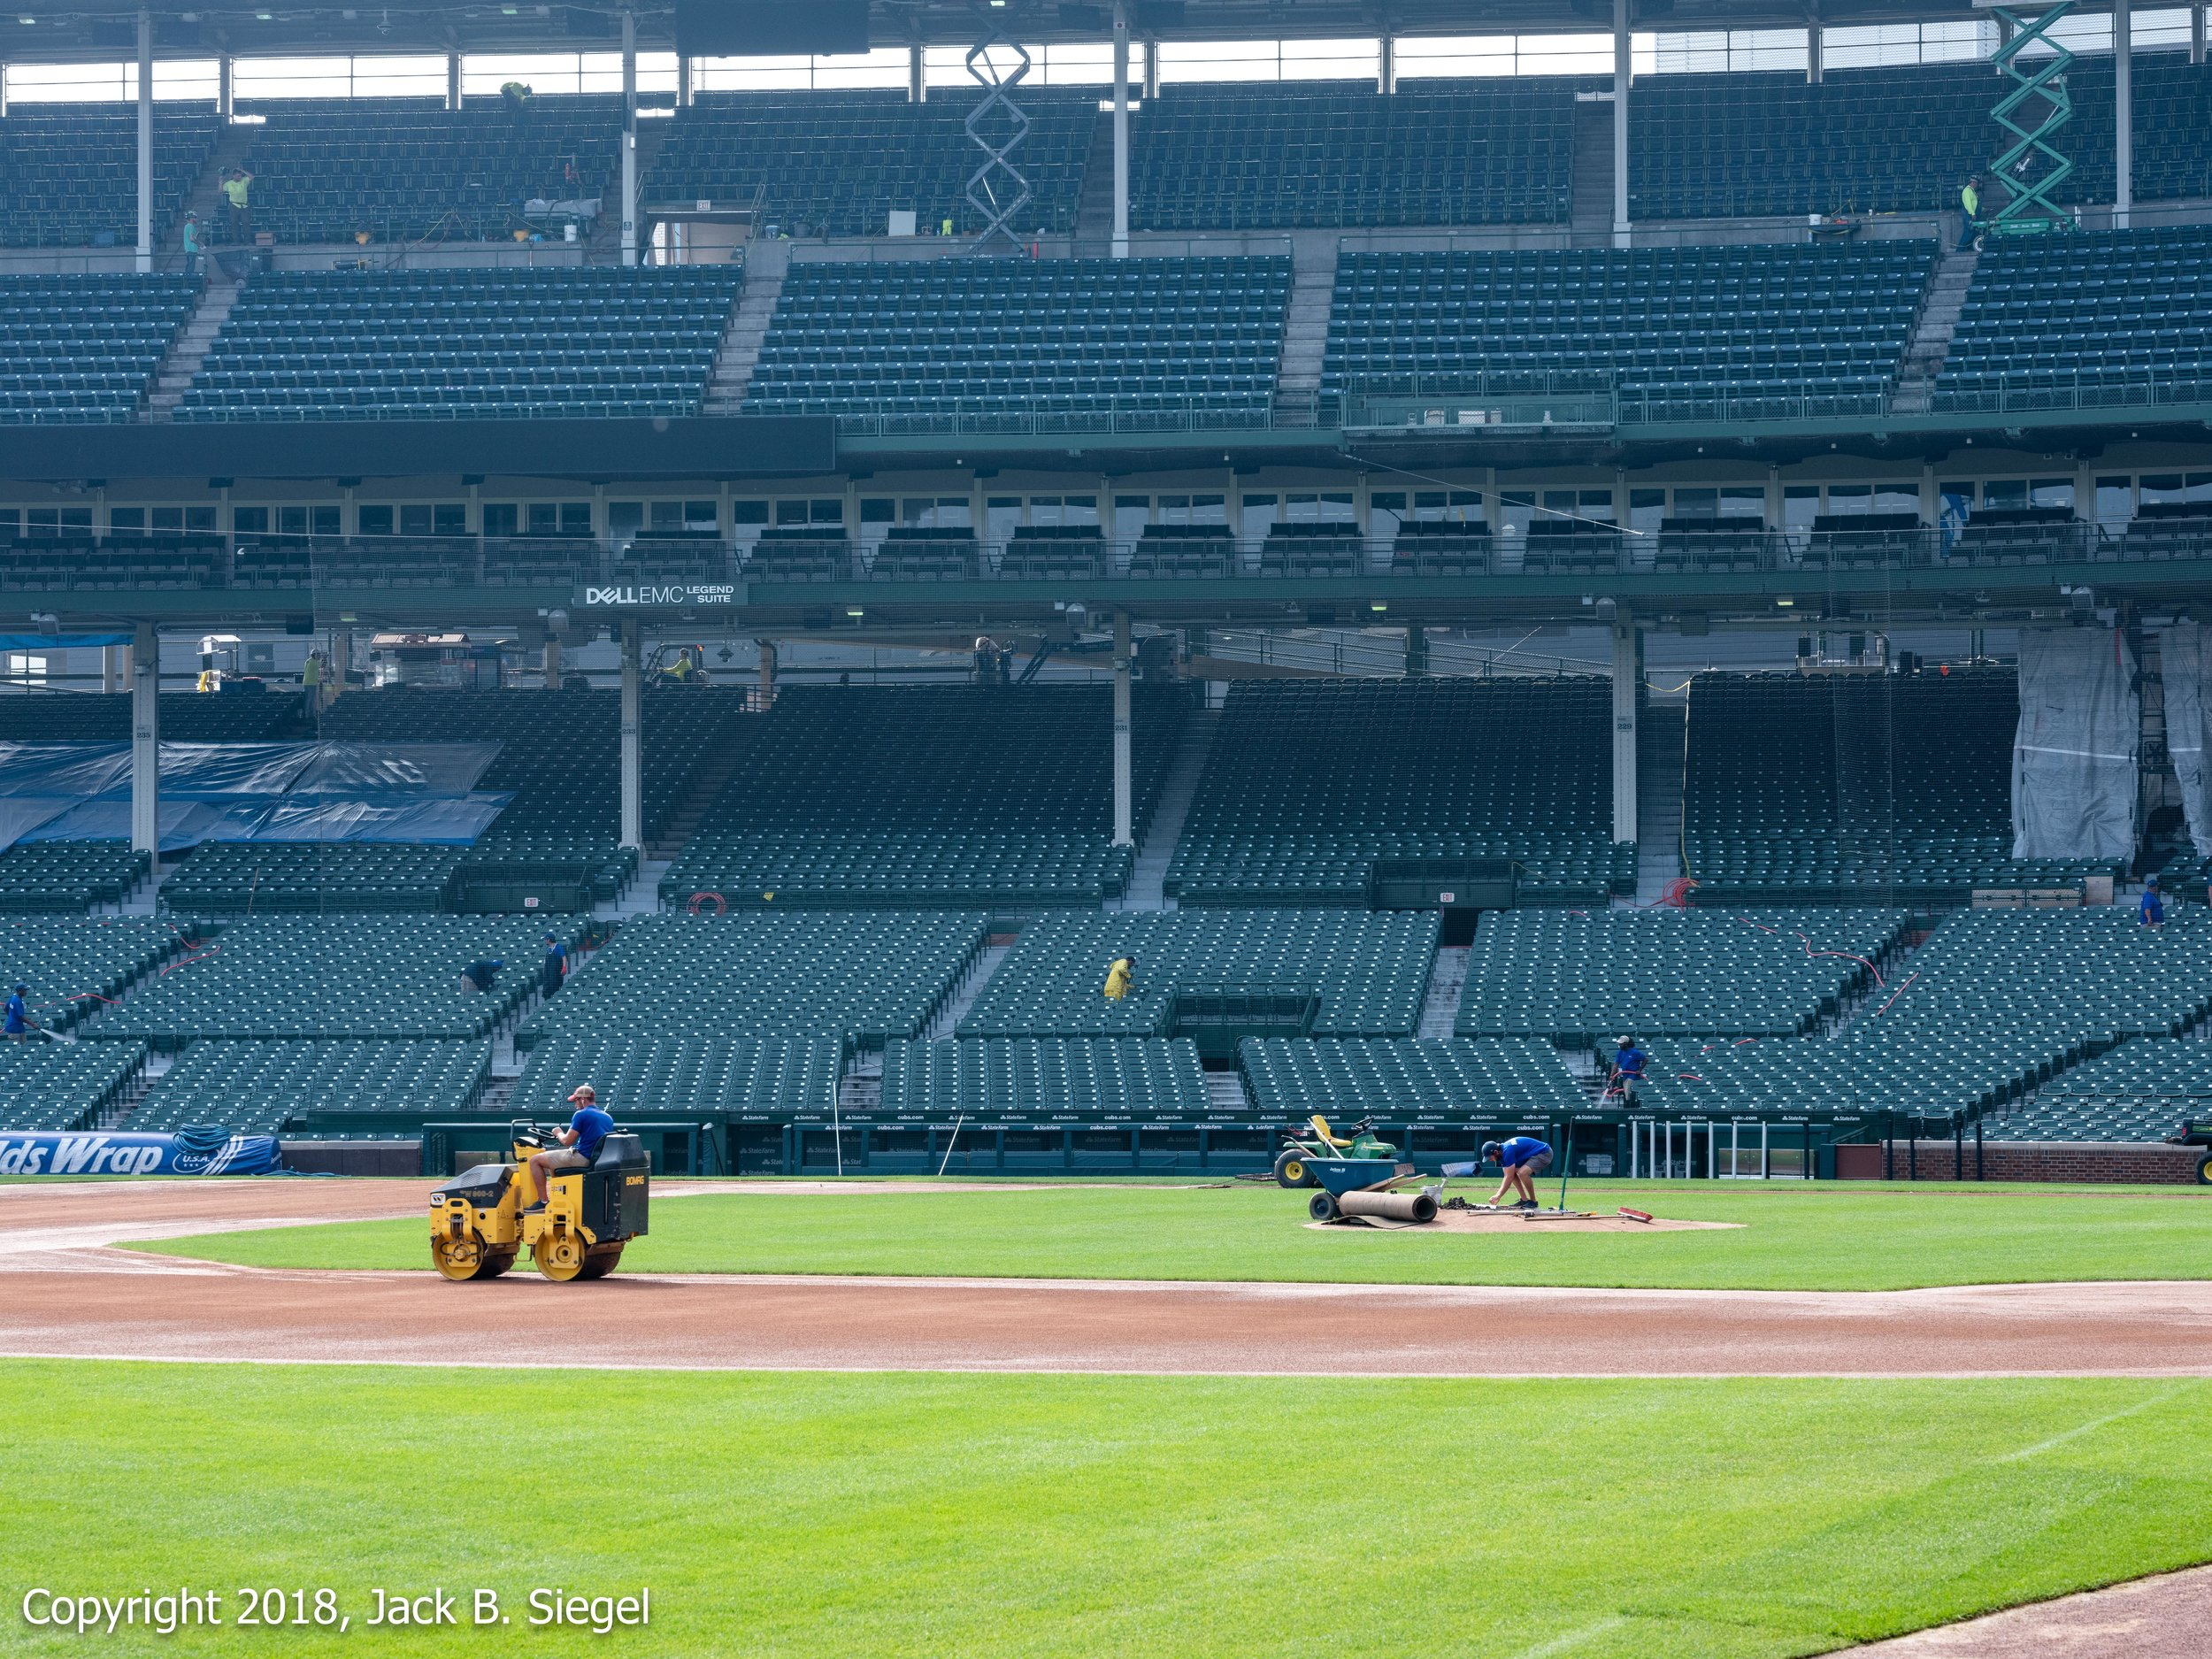 _DSF8670_Copyright 2018 jpeg_Getting Ready for the Playoffs.jpg